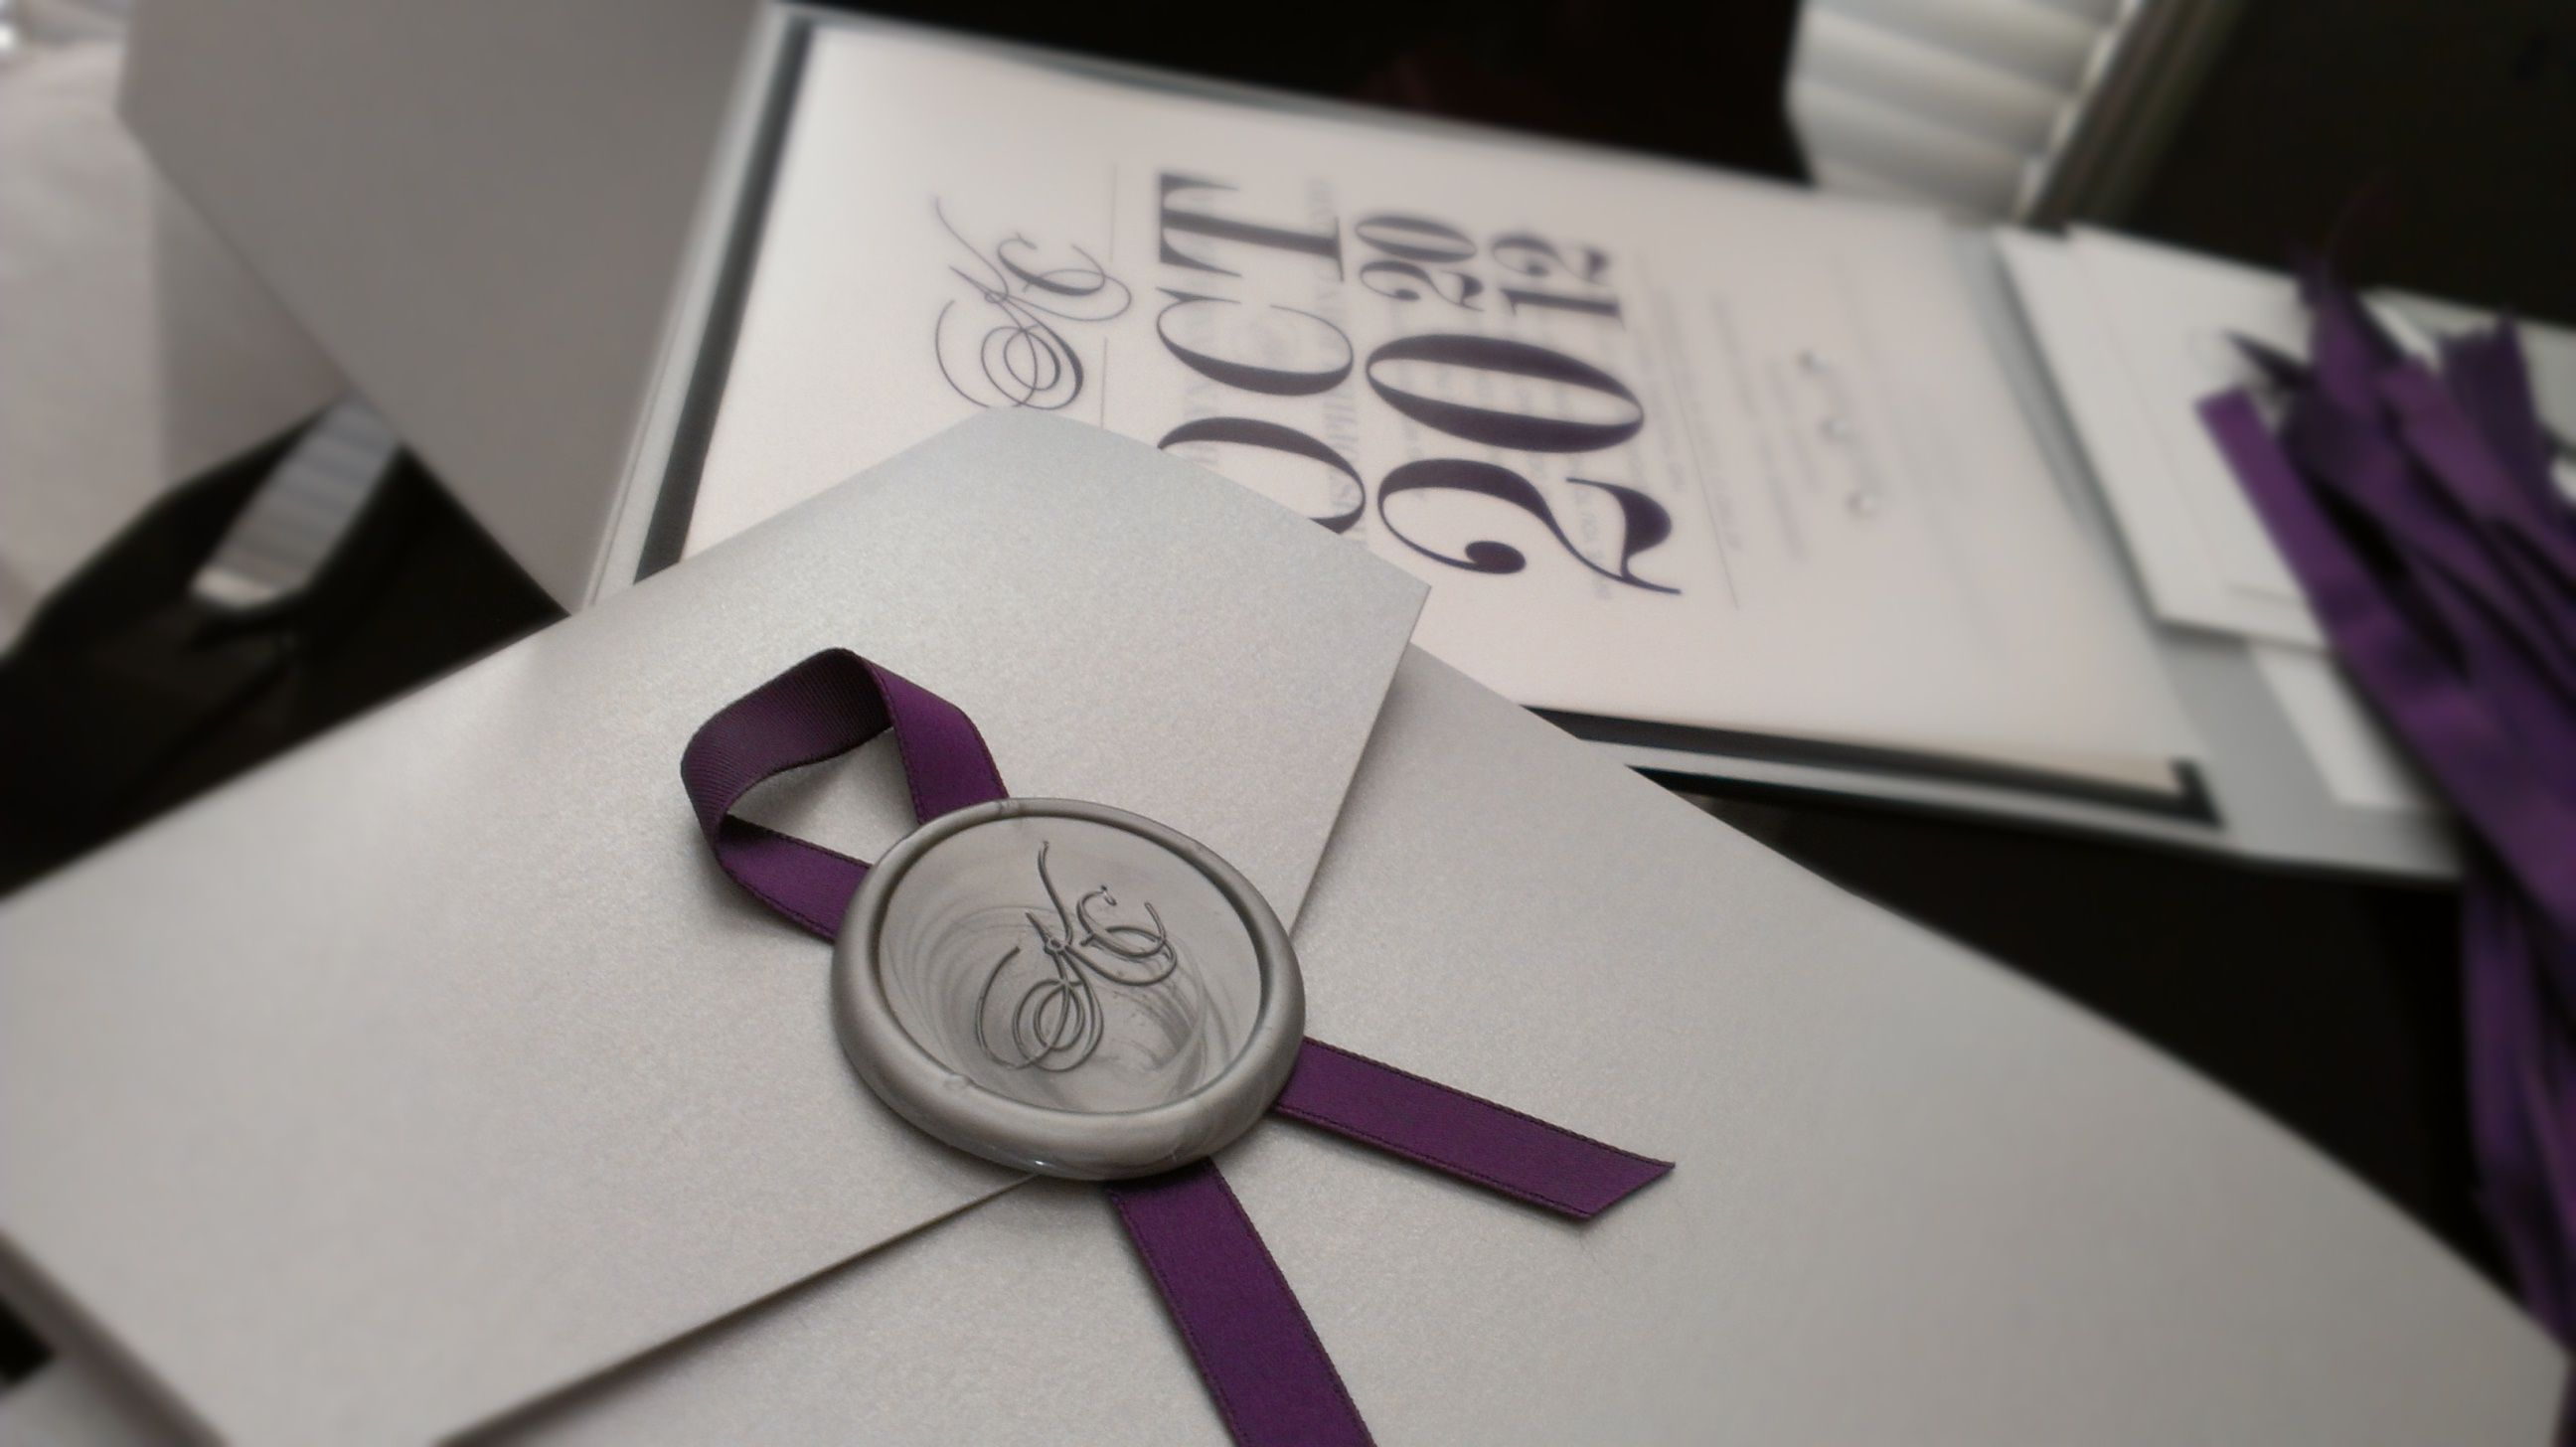 Wax Seals For Wedding Invitations: Purple And Silver Wedding Invitation With Wax Seal Www